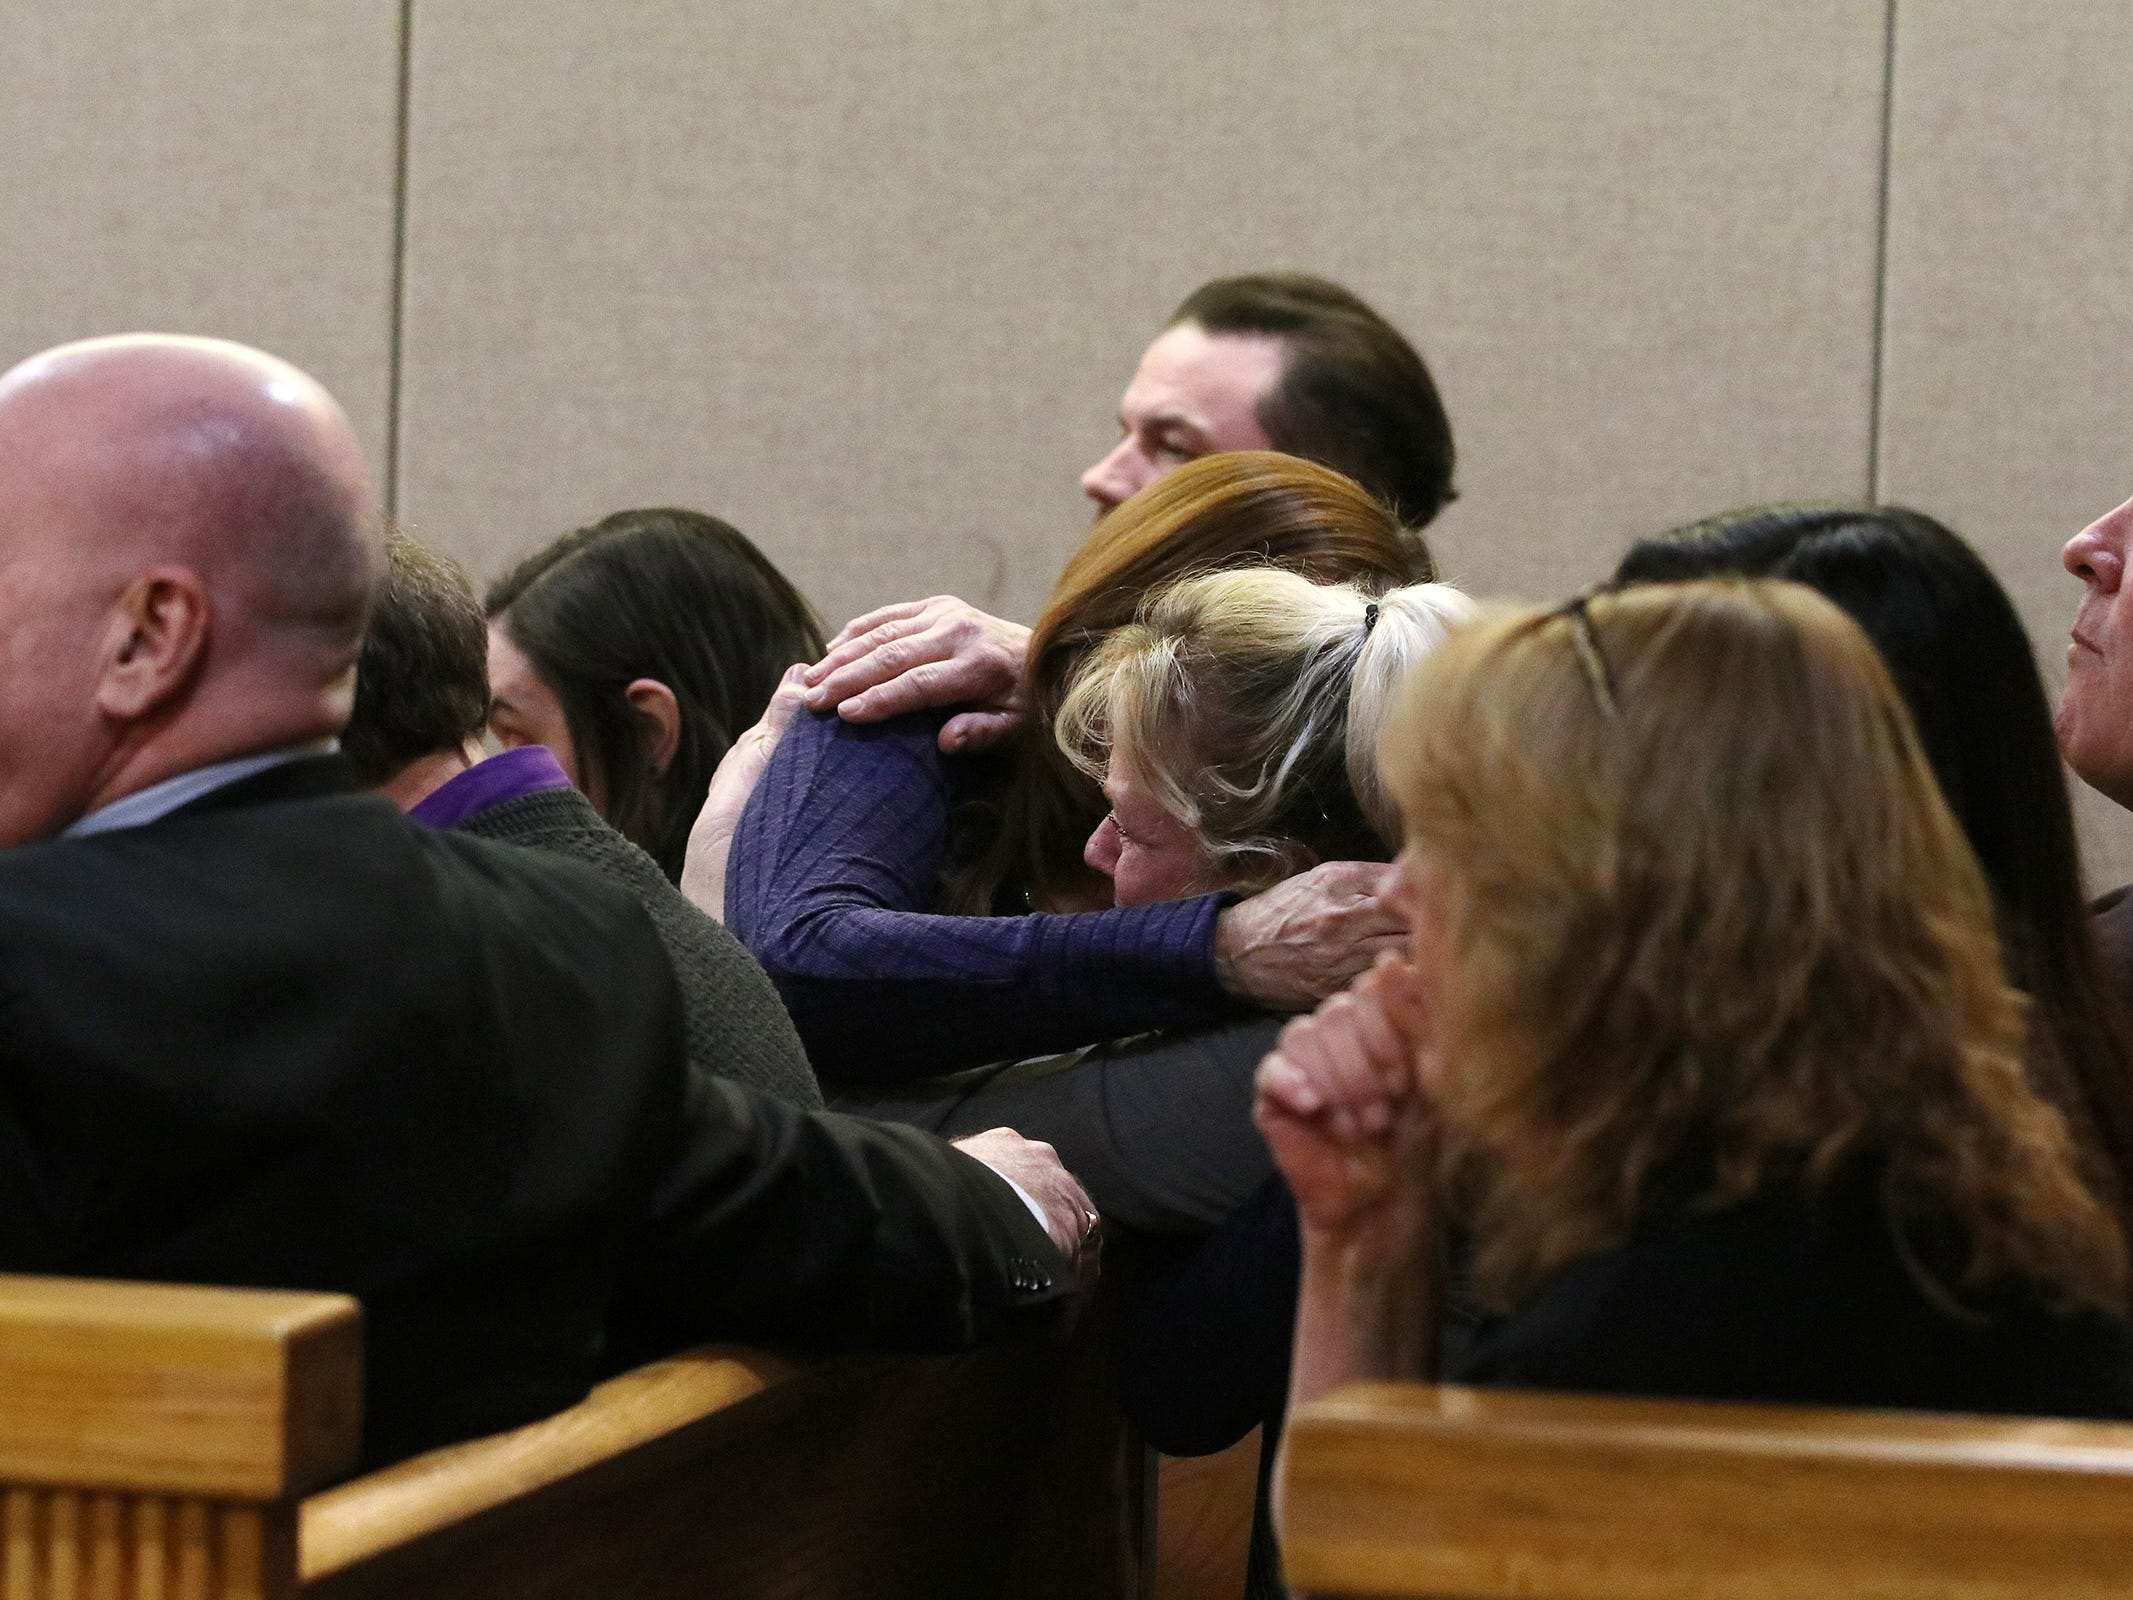 Kristine Eckert, the girlfriend of Sarah Stern's father, MIchael Stern, hugs a woman behind her as the jury finds Liam McAtasney, who is charged with the murder of former high school classmate, Sarah Stern, guilty on all charges before Superior Court Judge Richard W. English at the Monmouth County Courthouse in Freehold, NJ Tuesday, February 26, 2019.